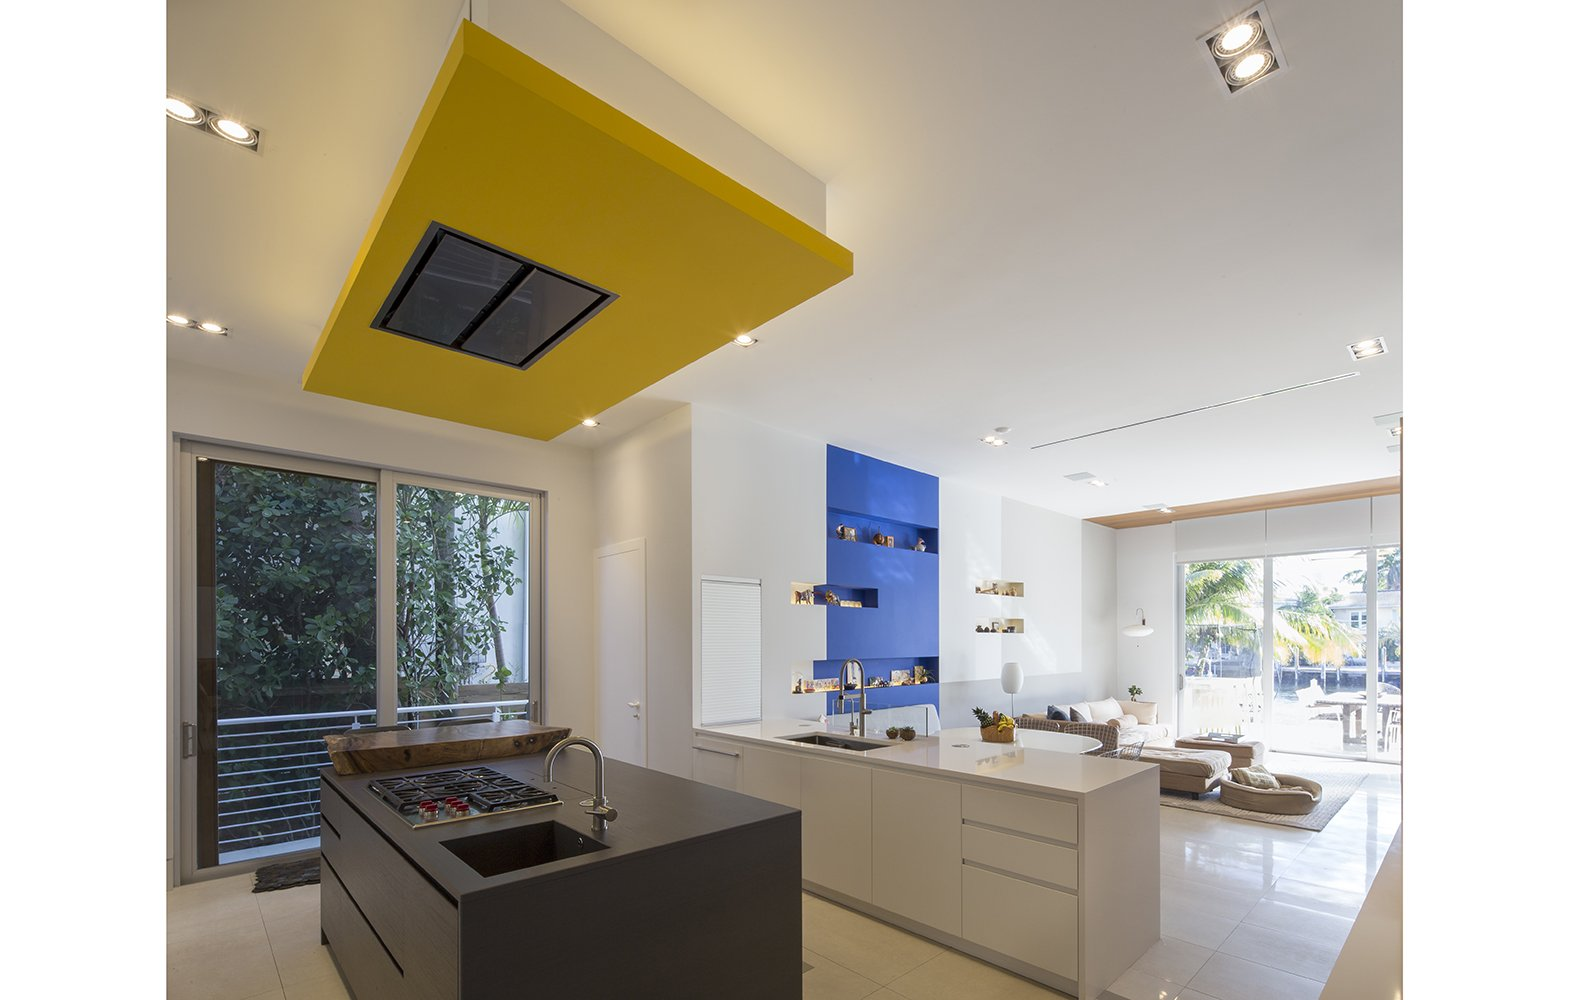 Kitchen View Interior Design project in 484 North Parkway, Florida